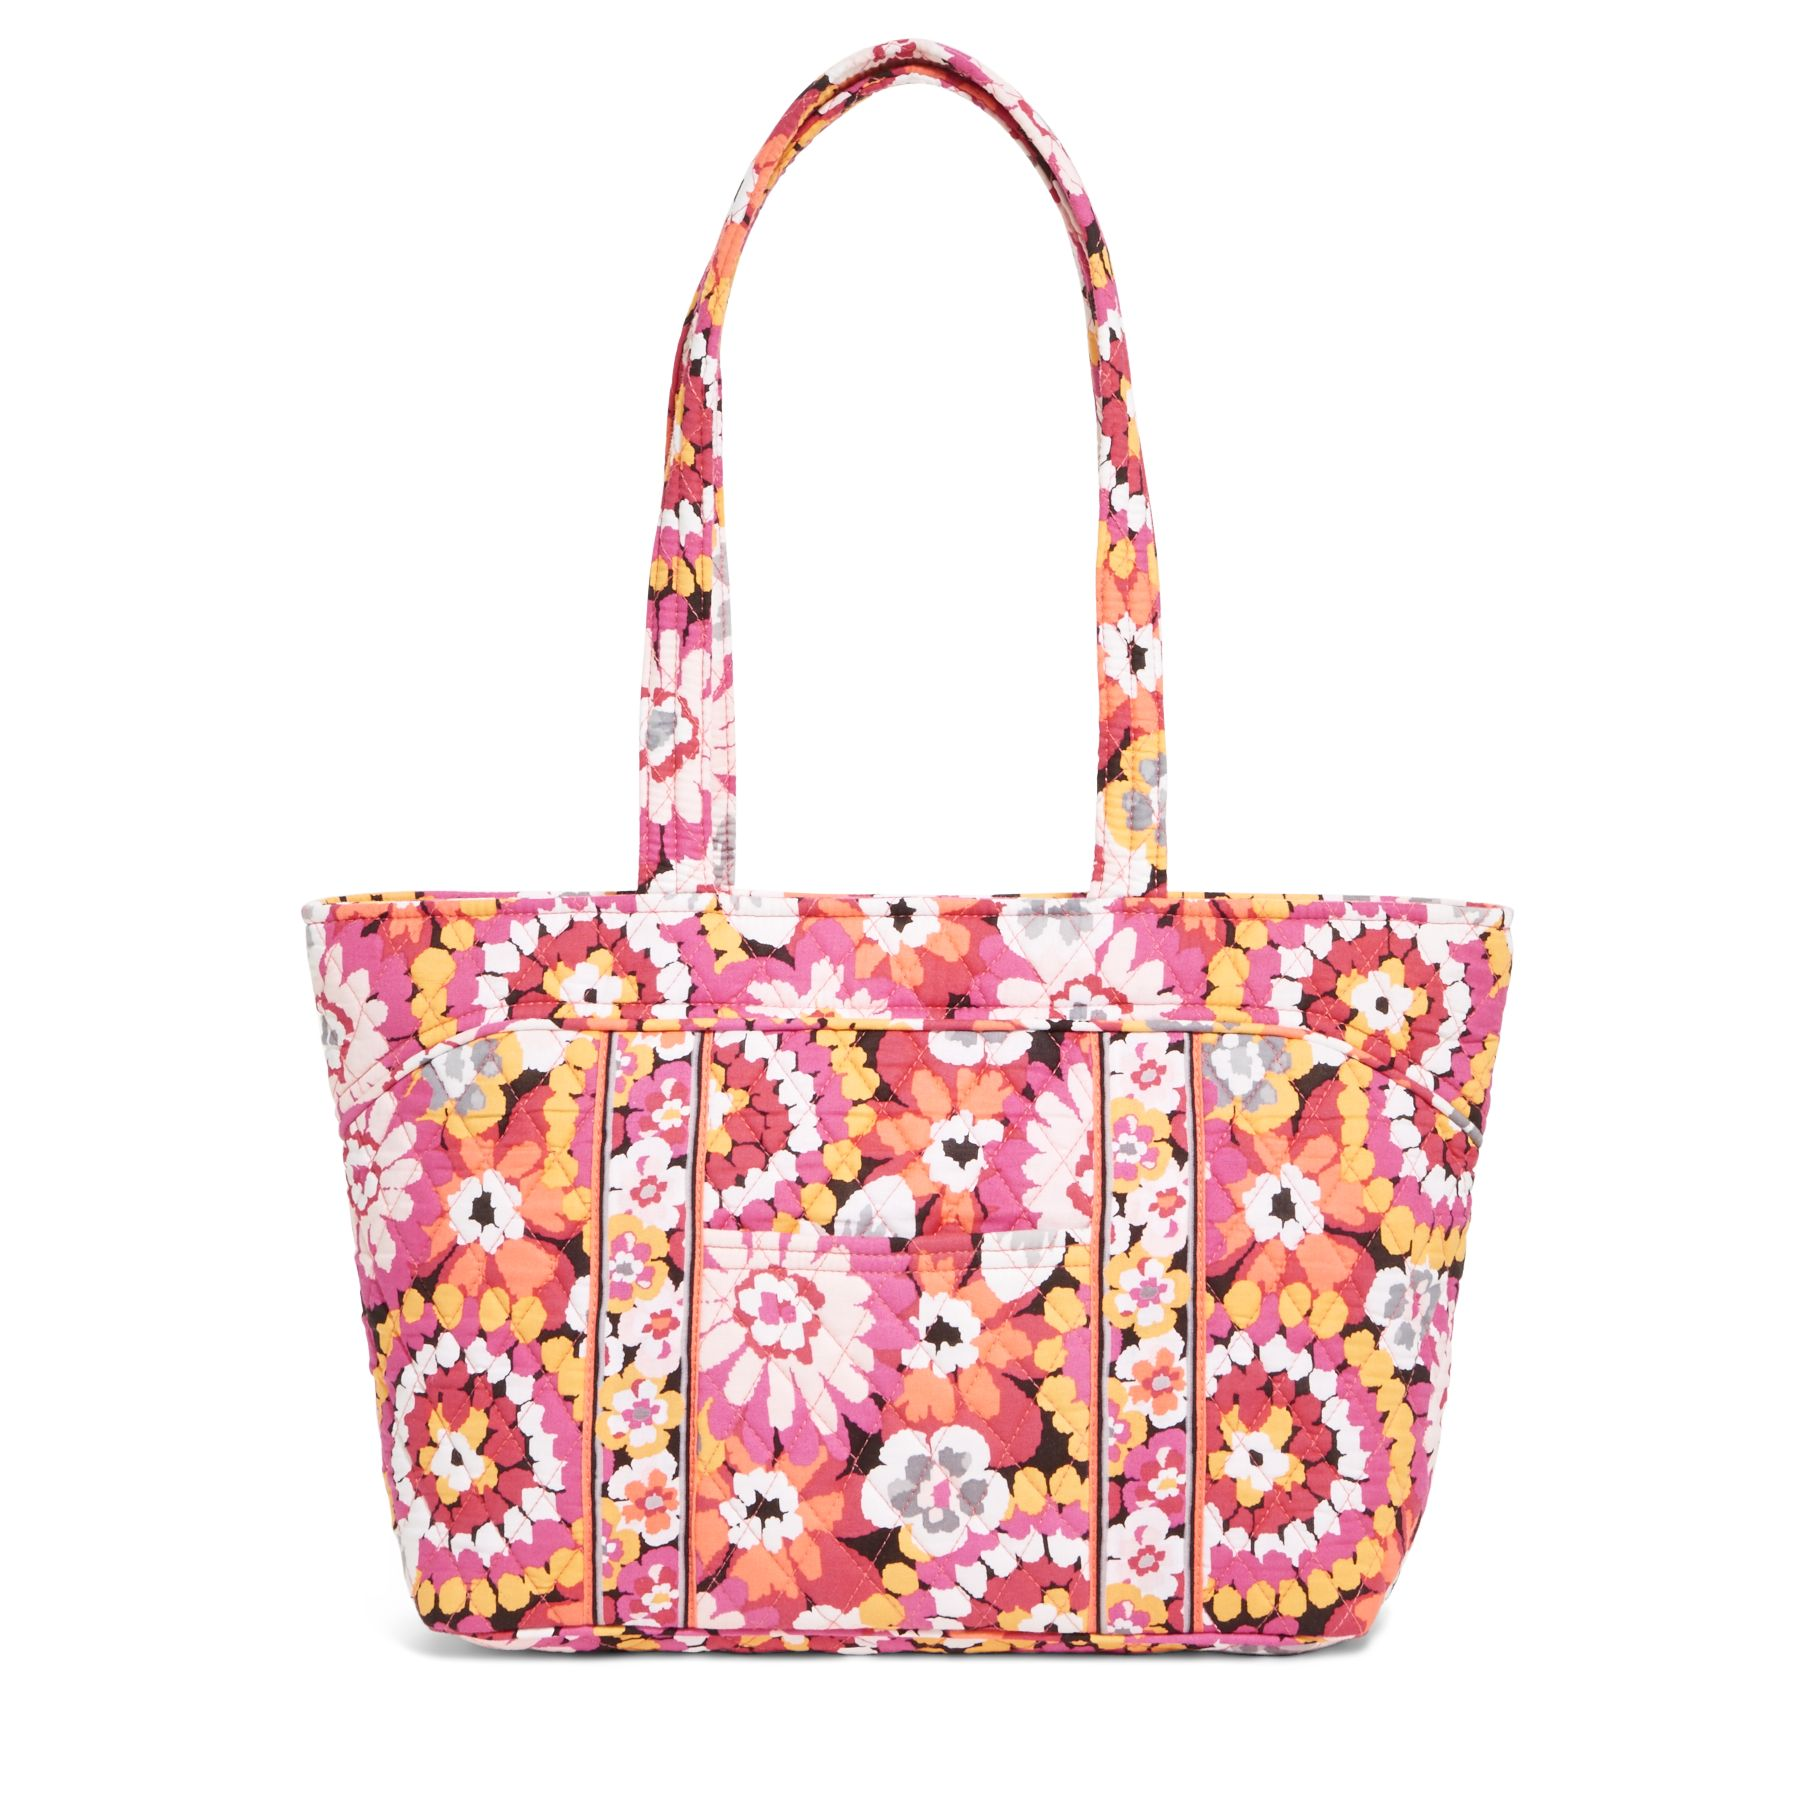 Vera Bradley Mandy Shoulder Bag in Pixie Blooms